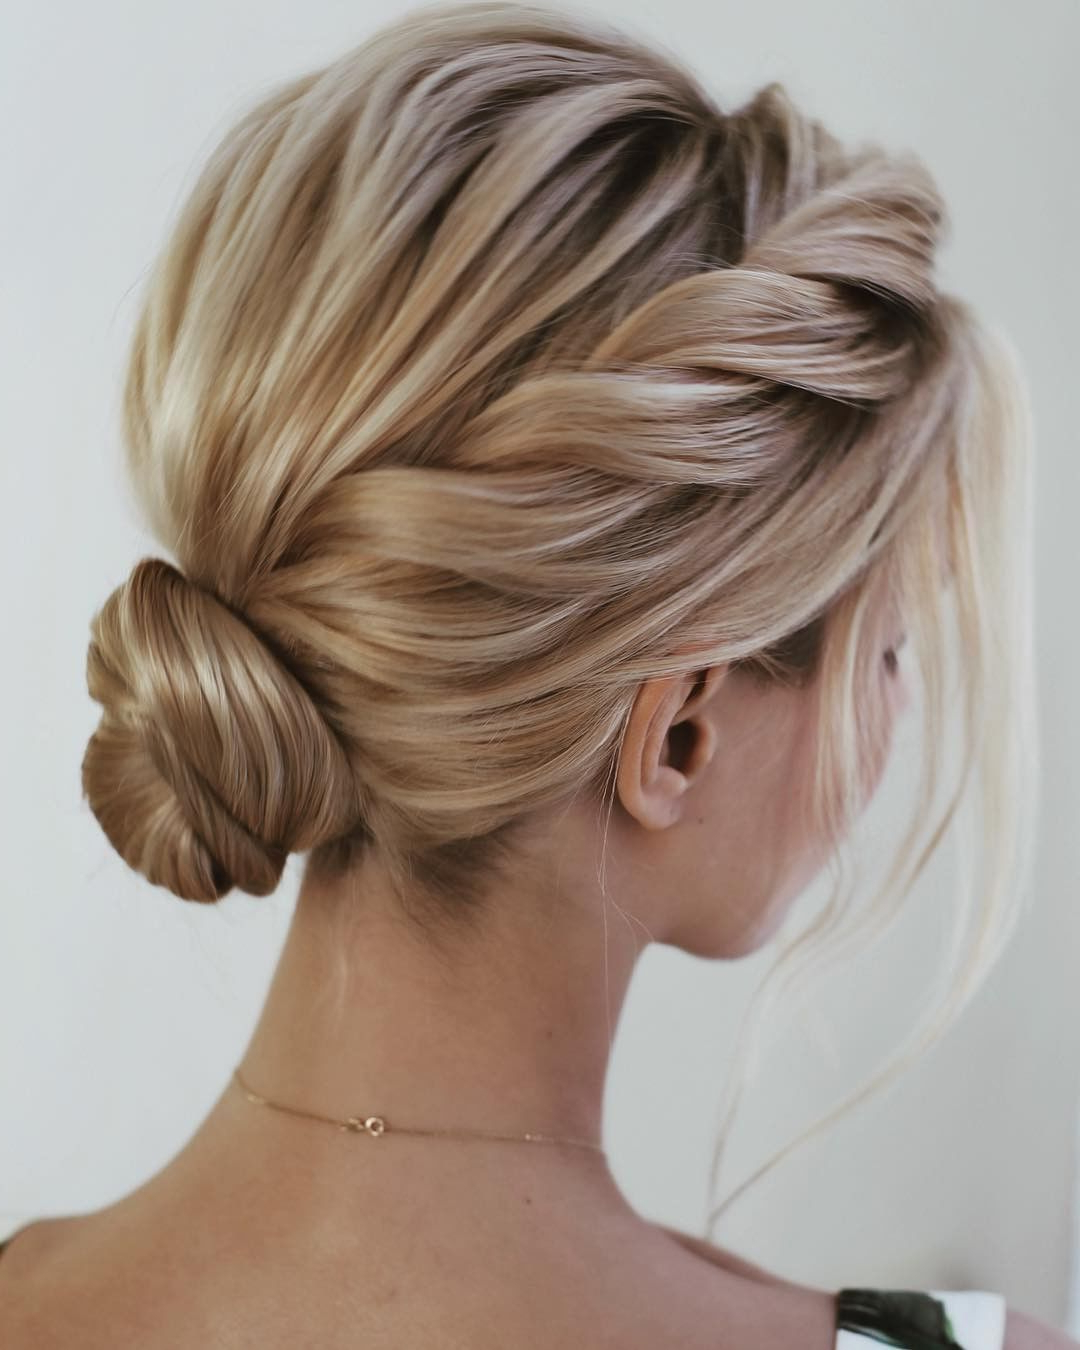 55 Easy Updos To Look Effortlessly Chic Within Most Current Side Swept Braid Updo Hairstyles (View 12 of 20)